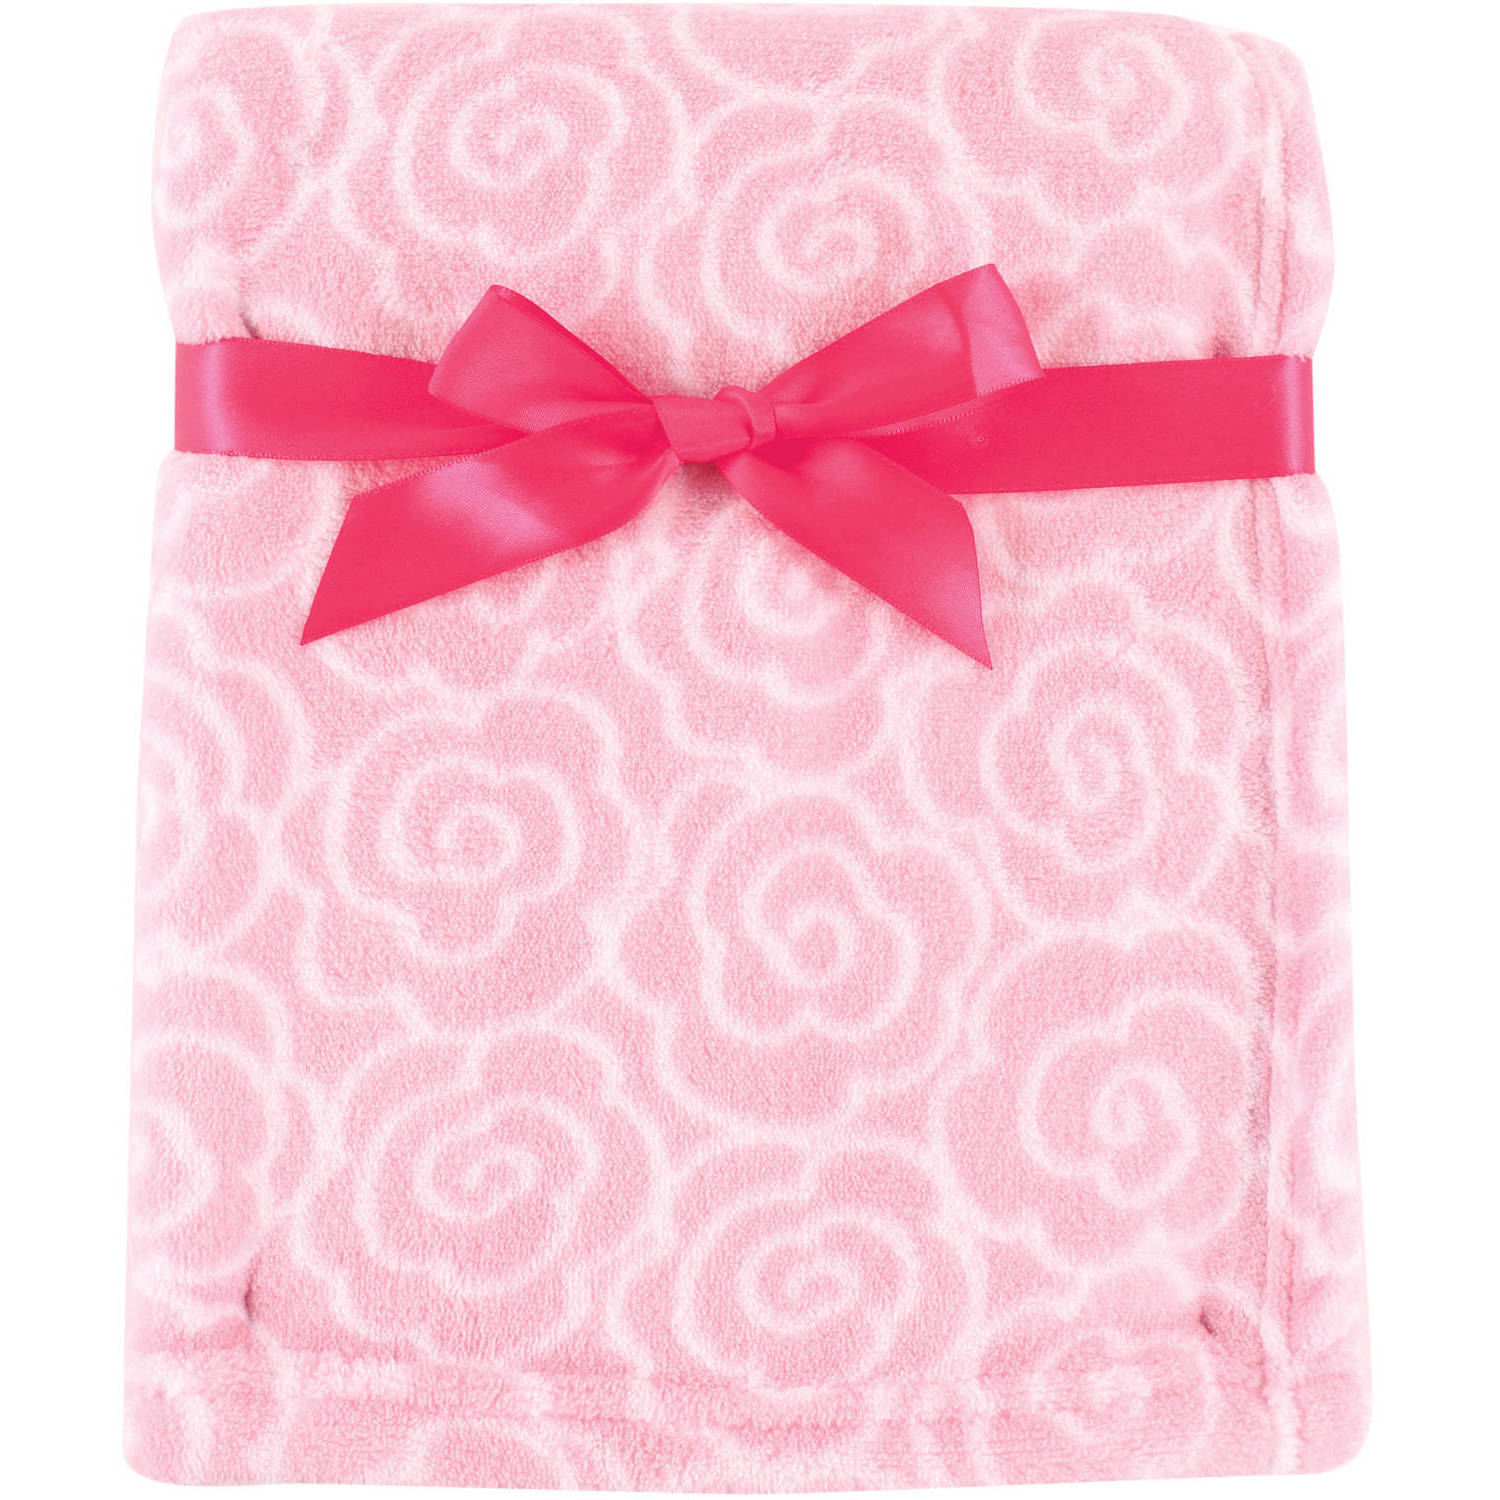 Luvable Friends Coral Fleece Blanket, Pink Rose